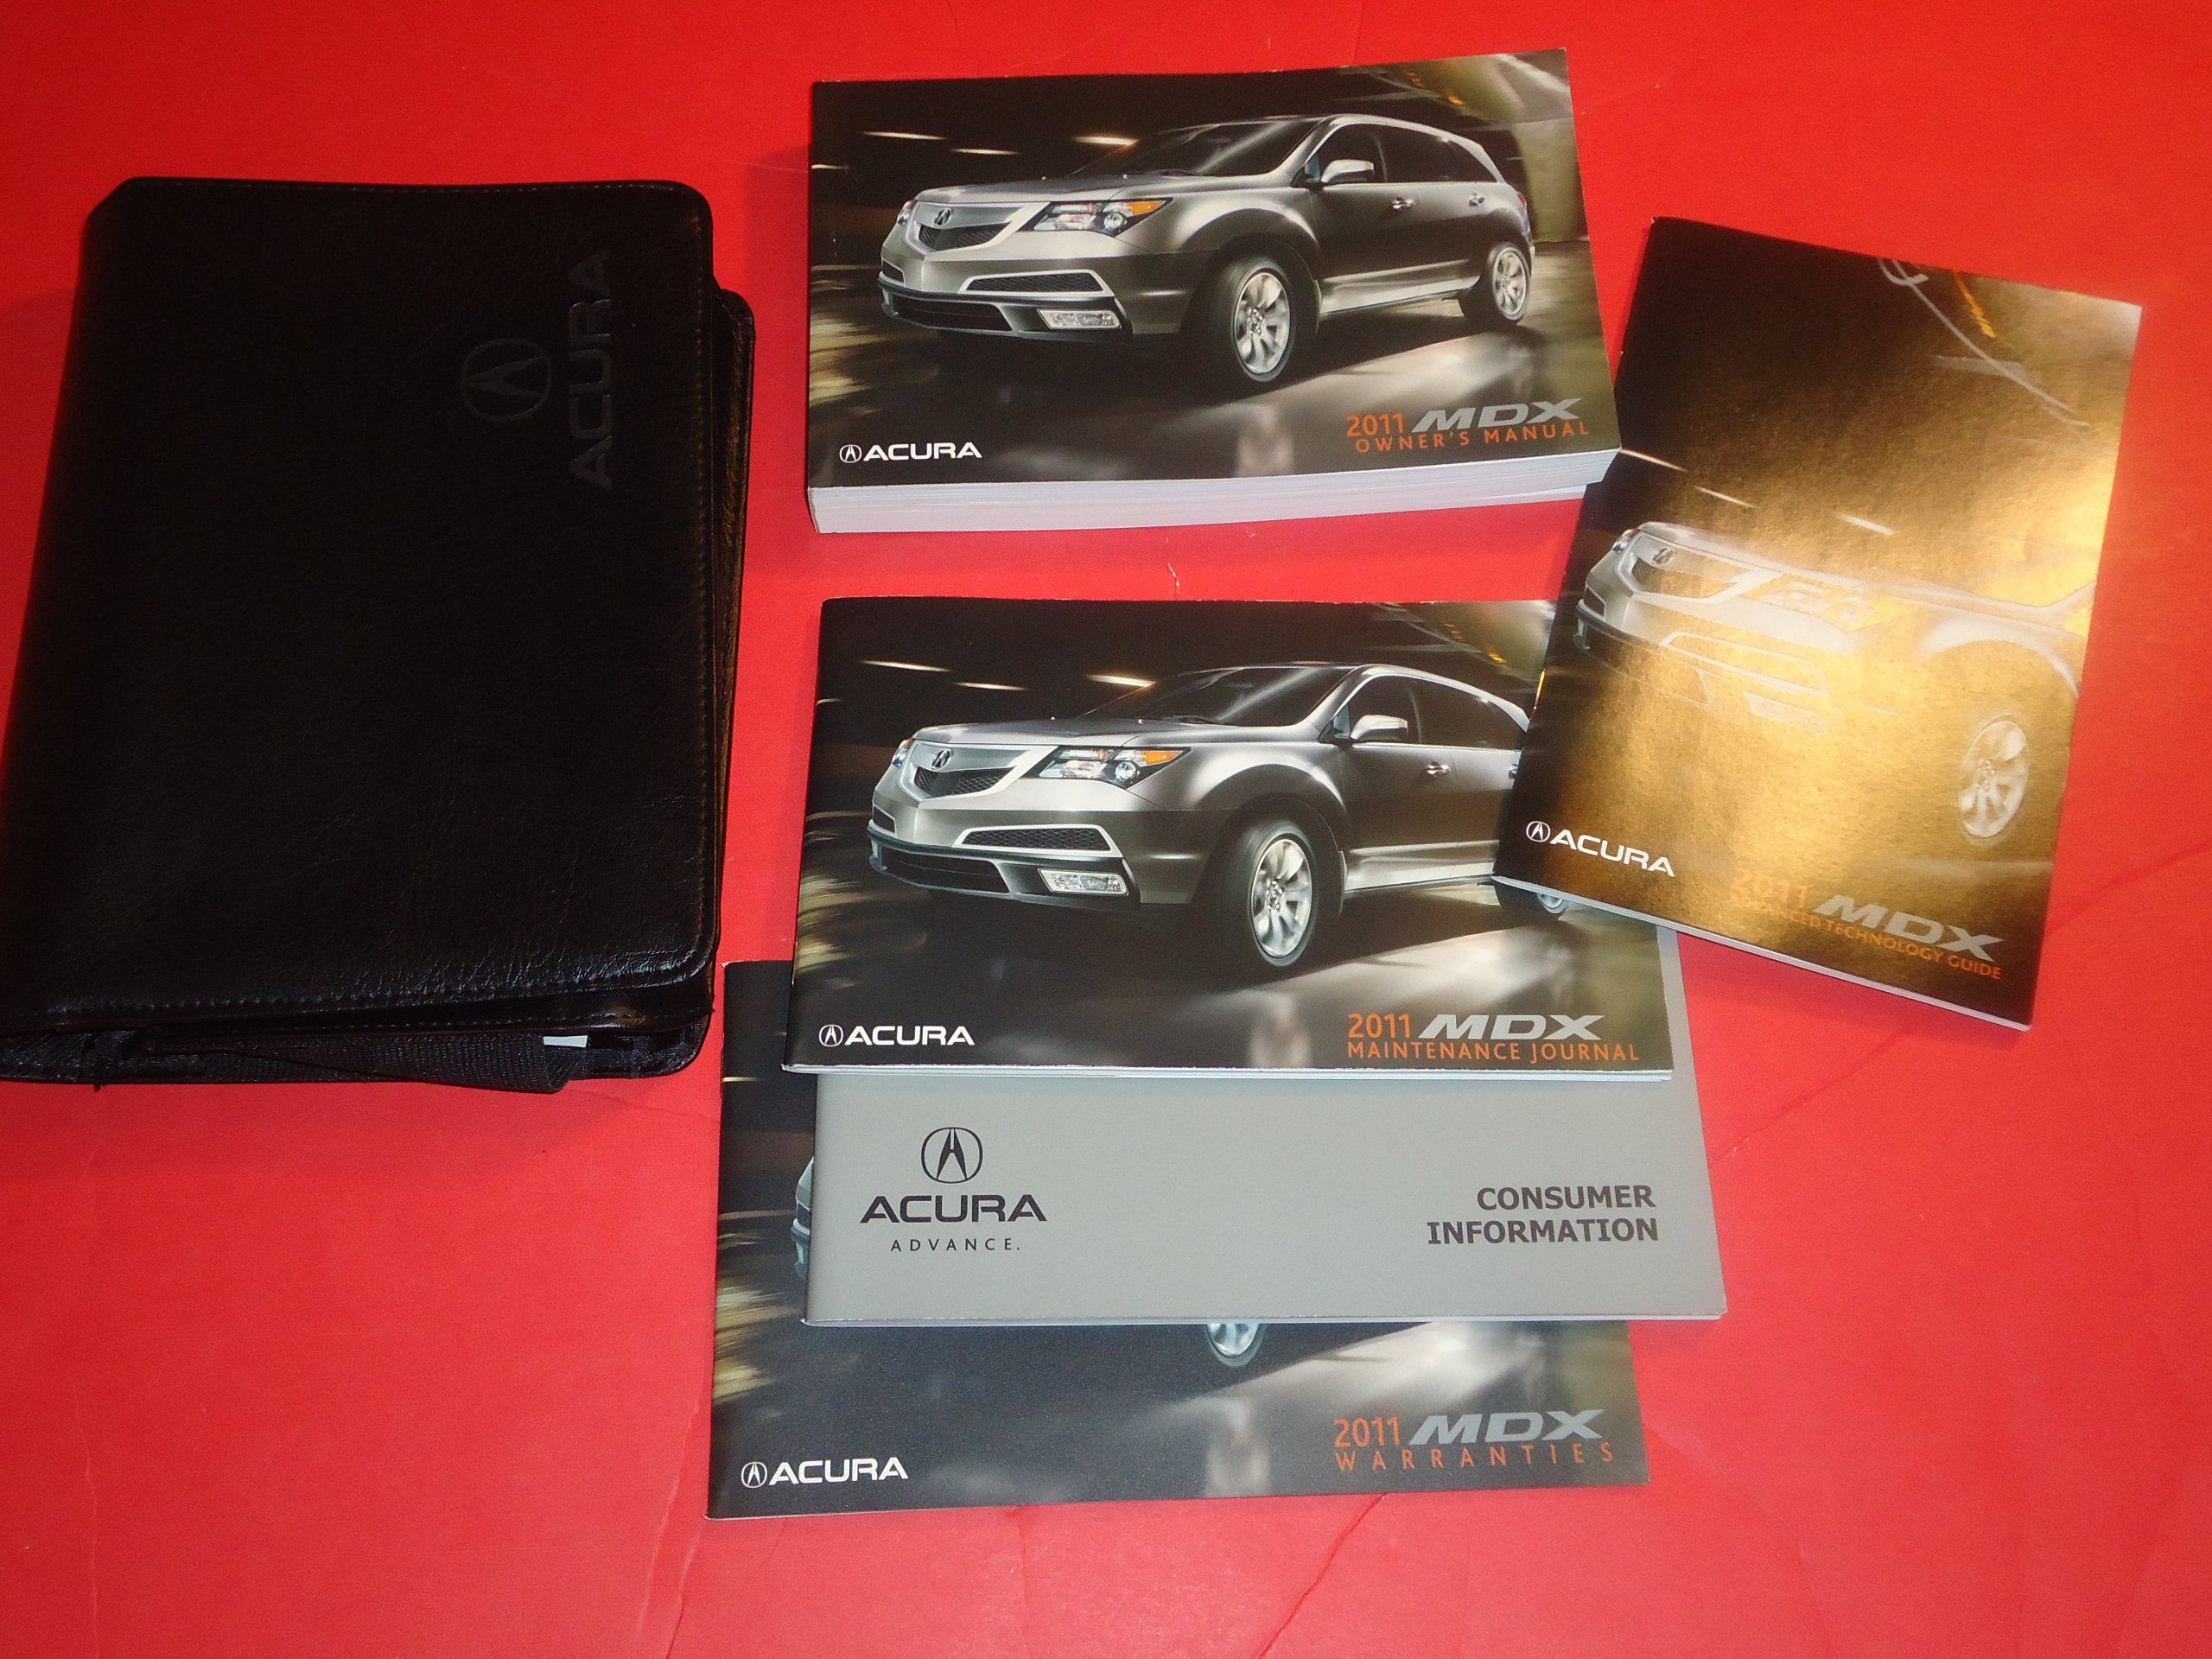 2011 acura mdx owners manual book case acura amazon com books rh amazon com 2011 acura mdx owners manual fuel octane 2011 acura mdx owners manual fuel octane